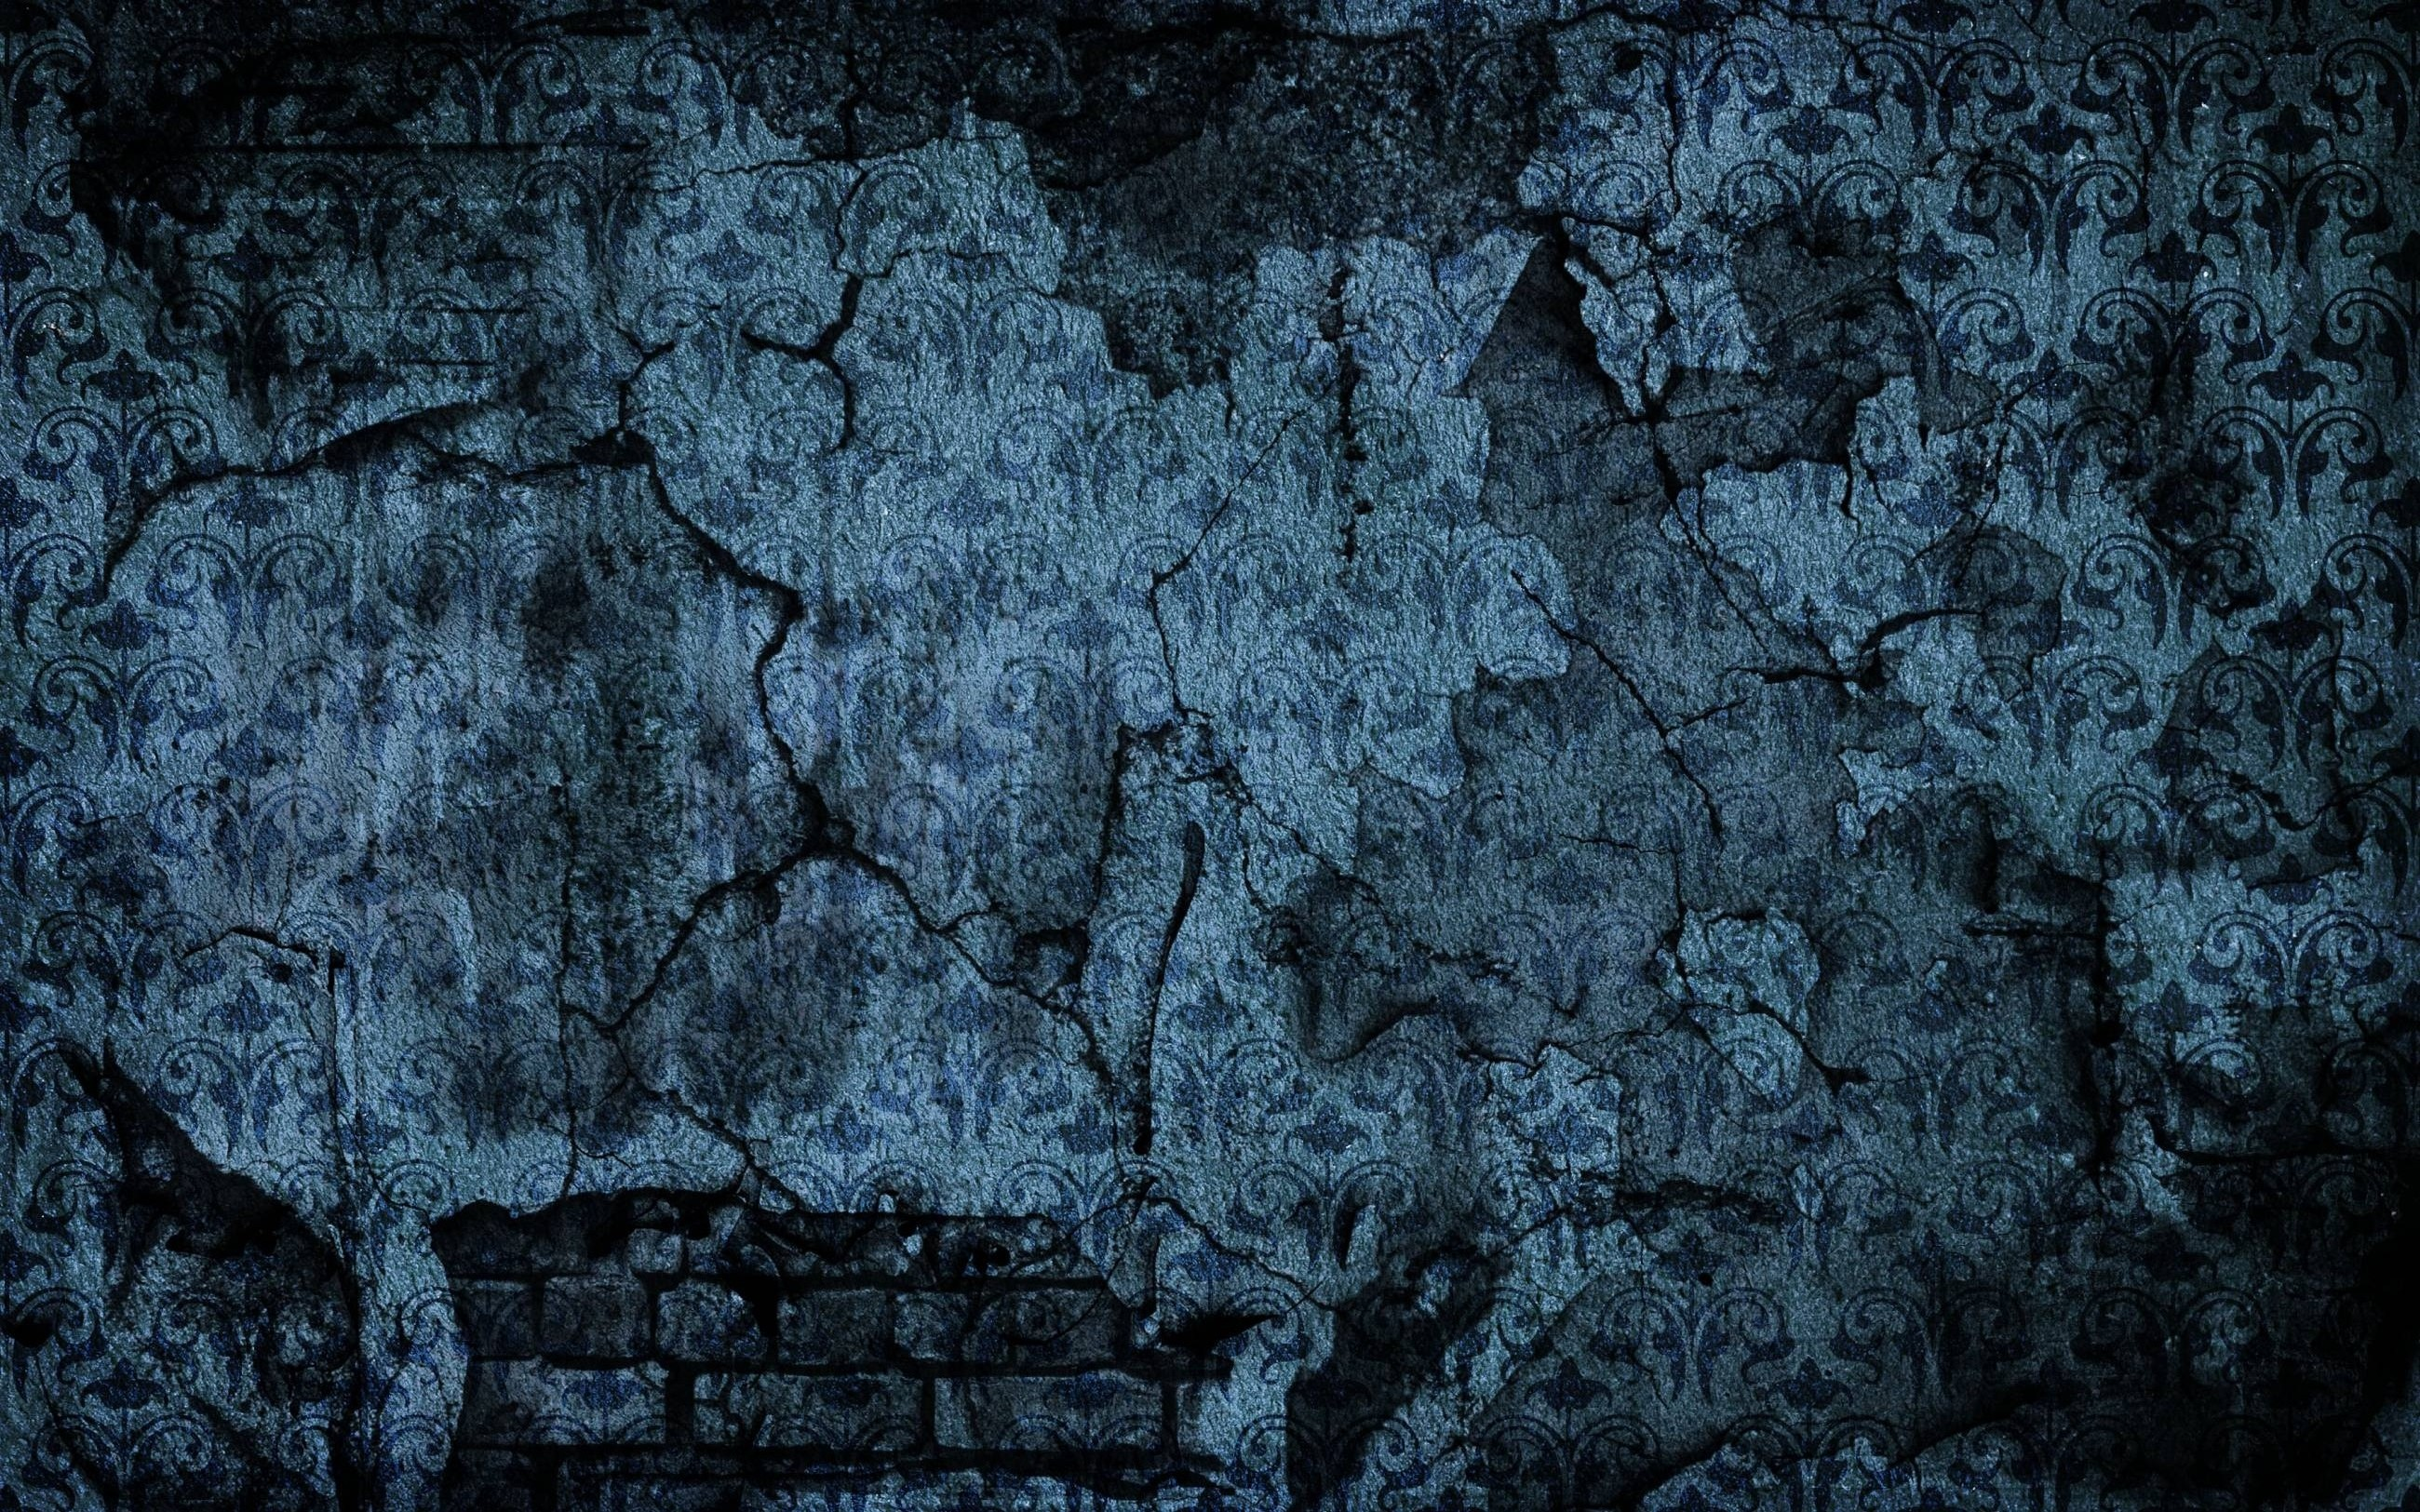 texture stone wall texture download background stone wallpaper 2600x1625